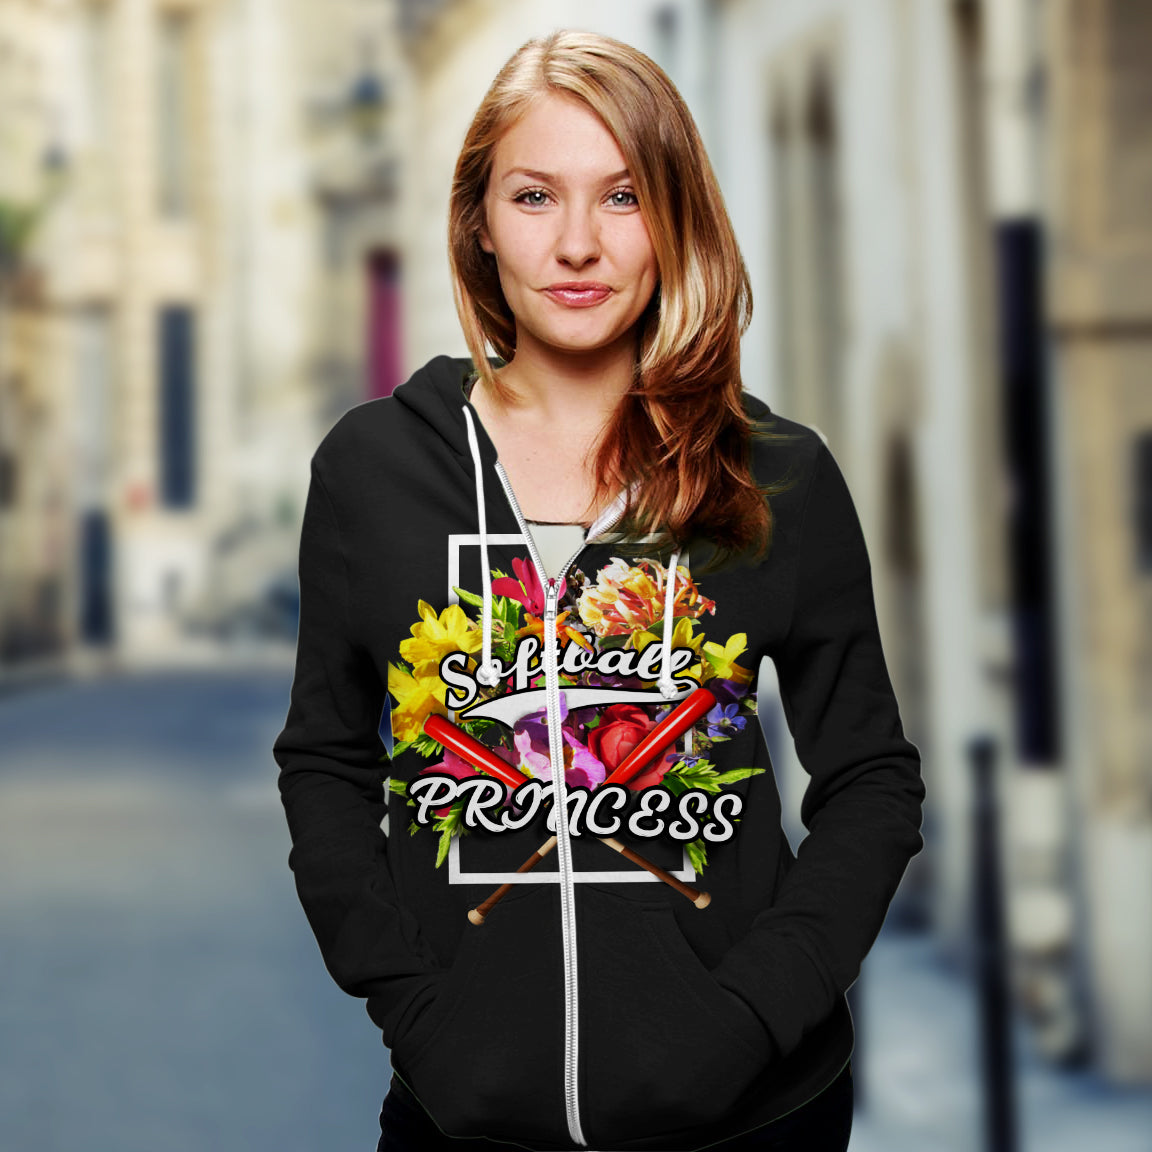 Zip Up Hoodies for Softball lovers - Softball Princess